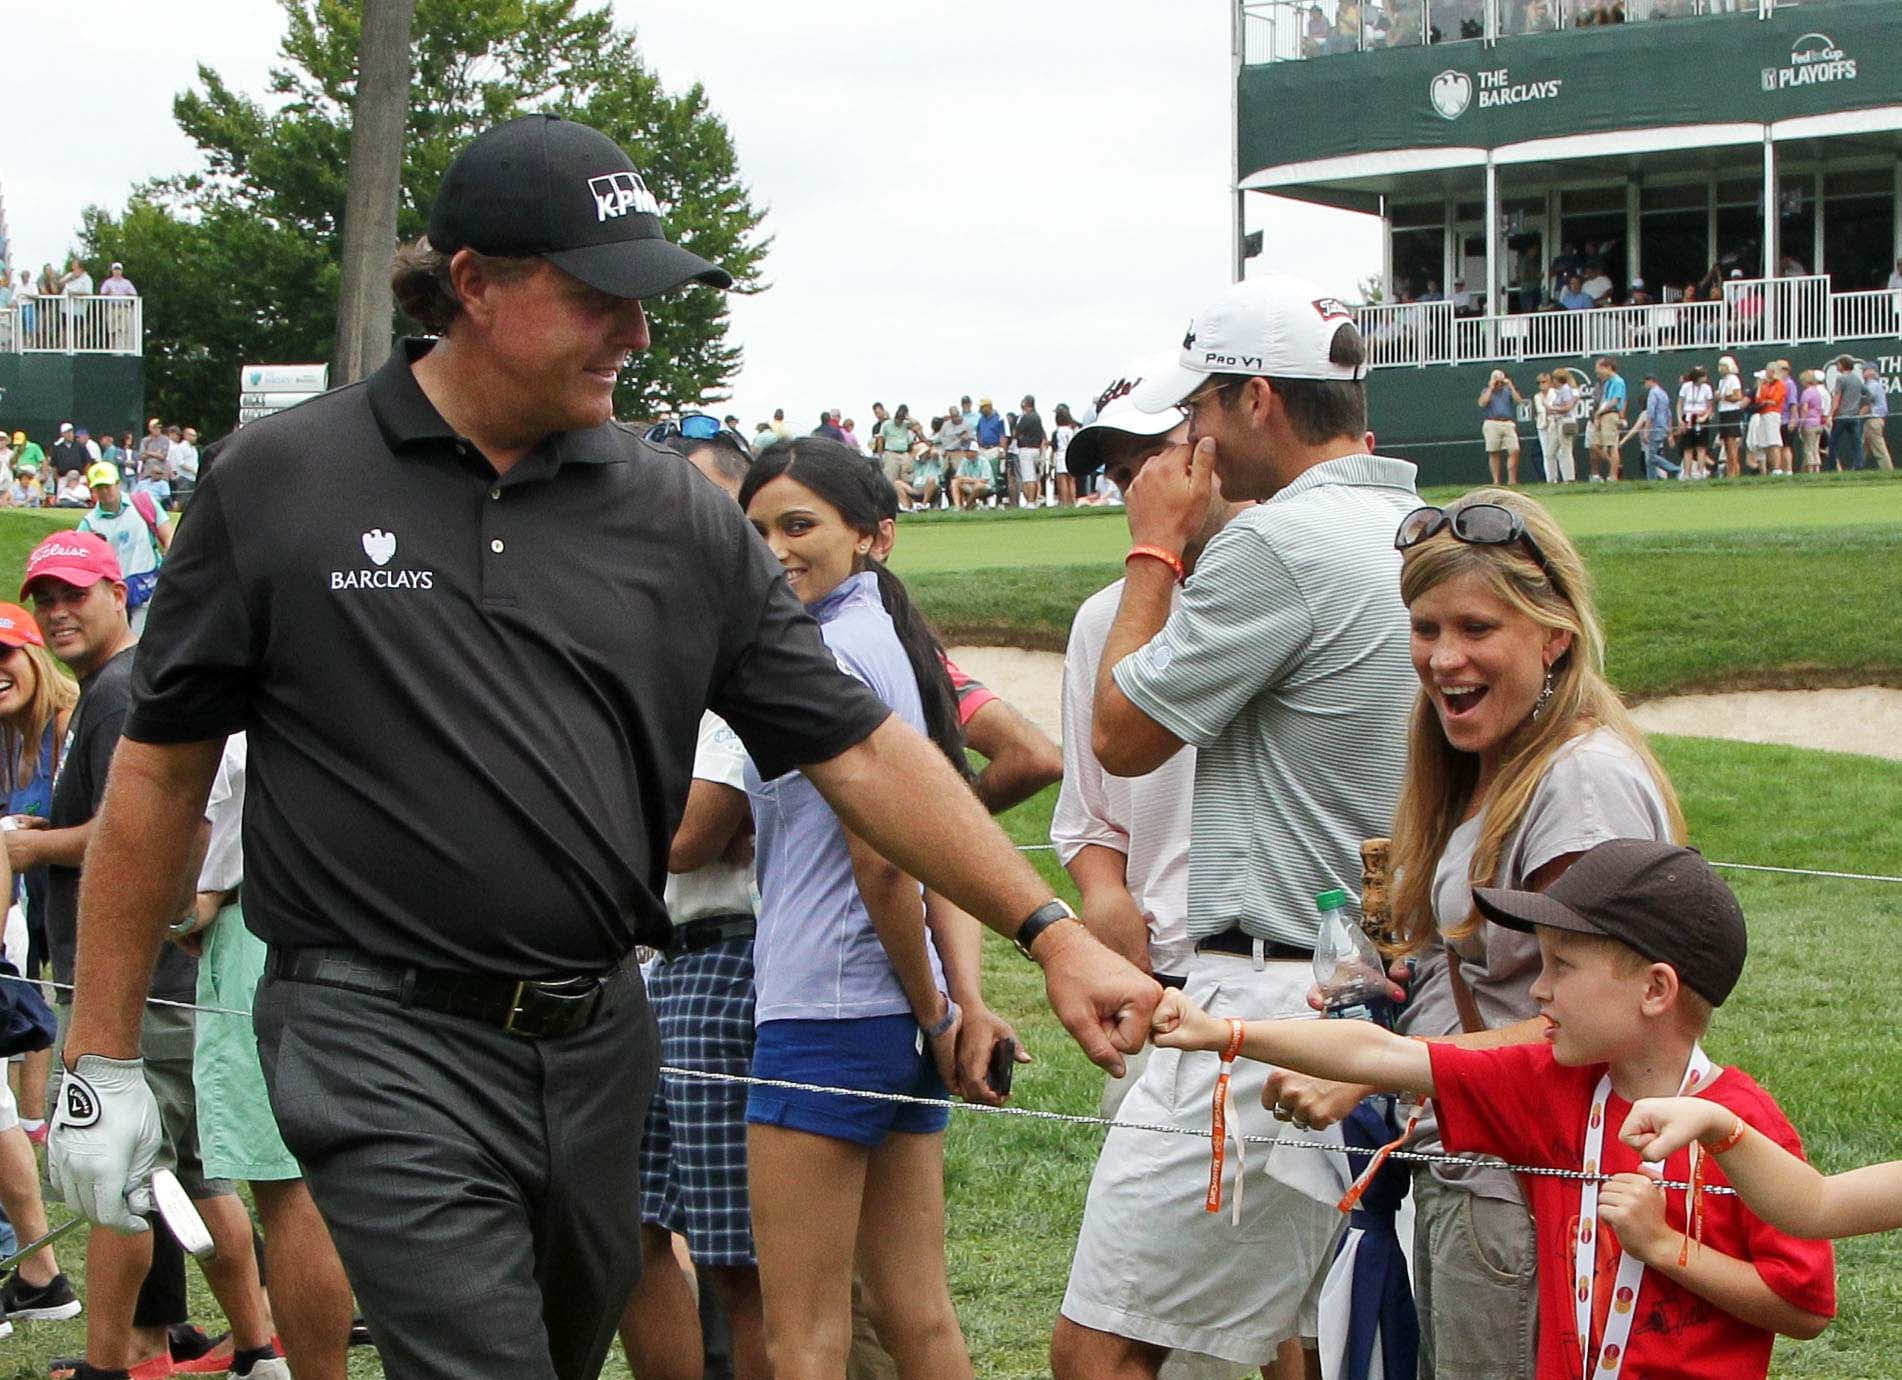 3. Phil plays from hospitality area on consecutive days at Barclays